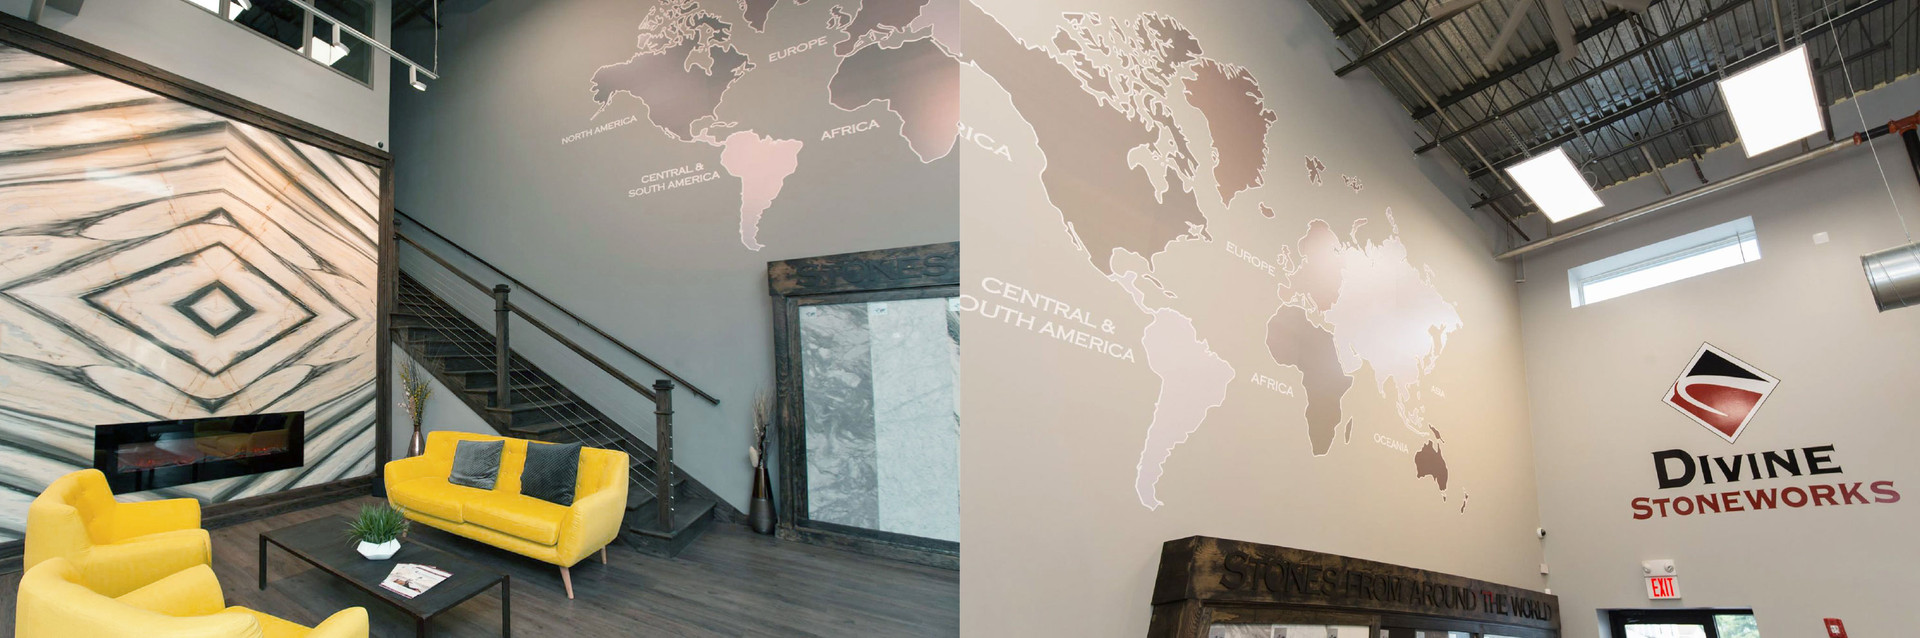 map wall cling and logo wall cling